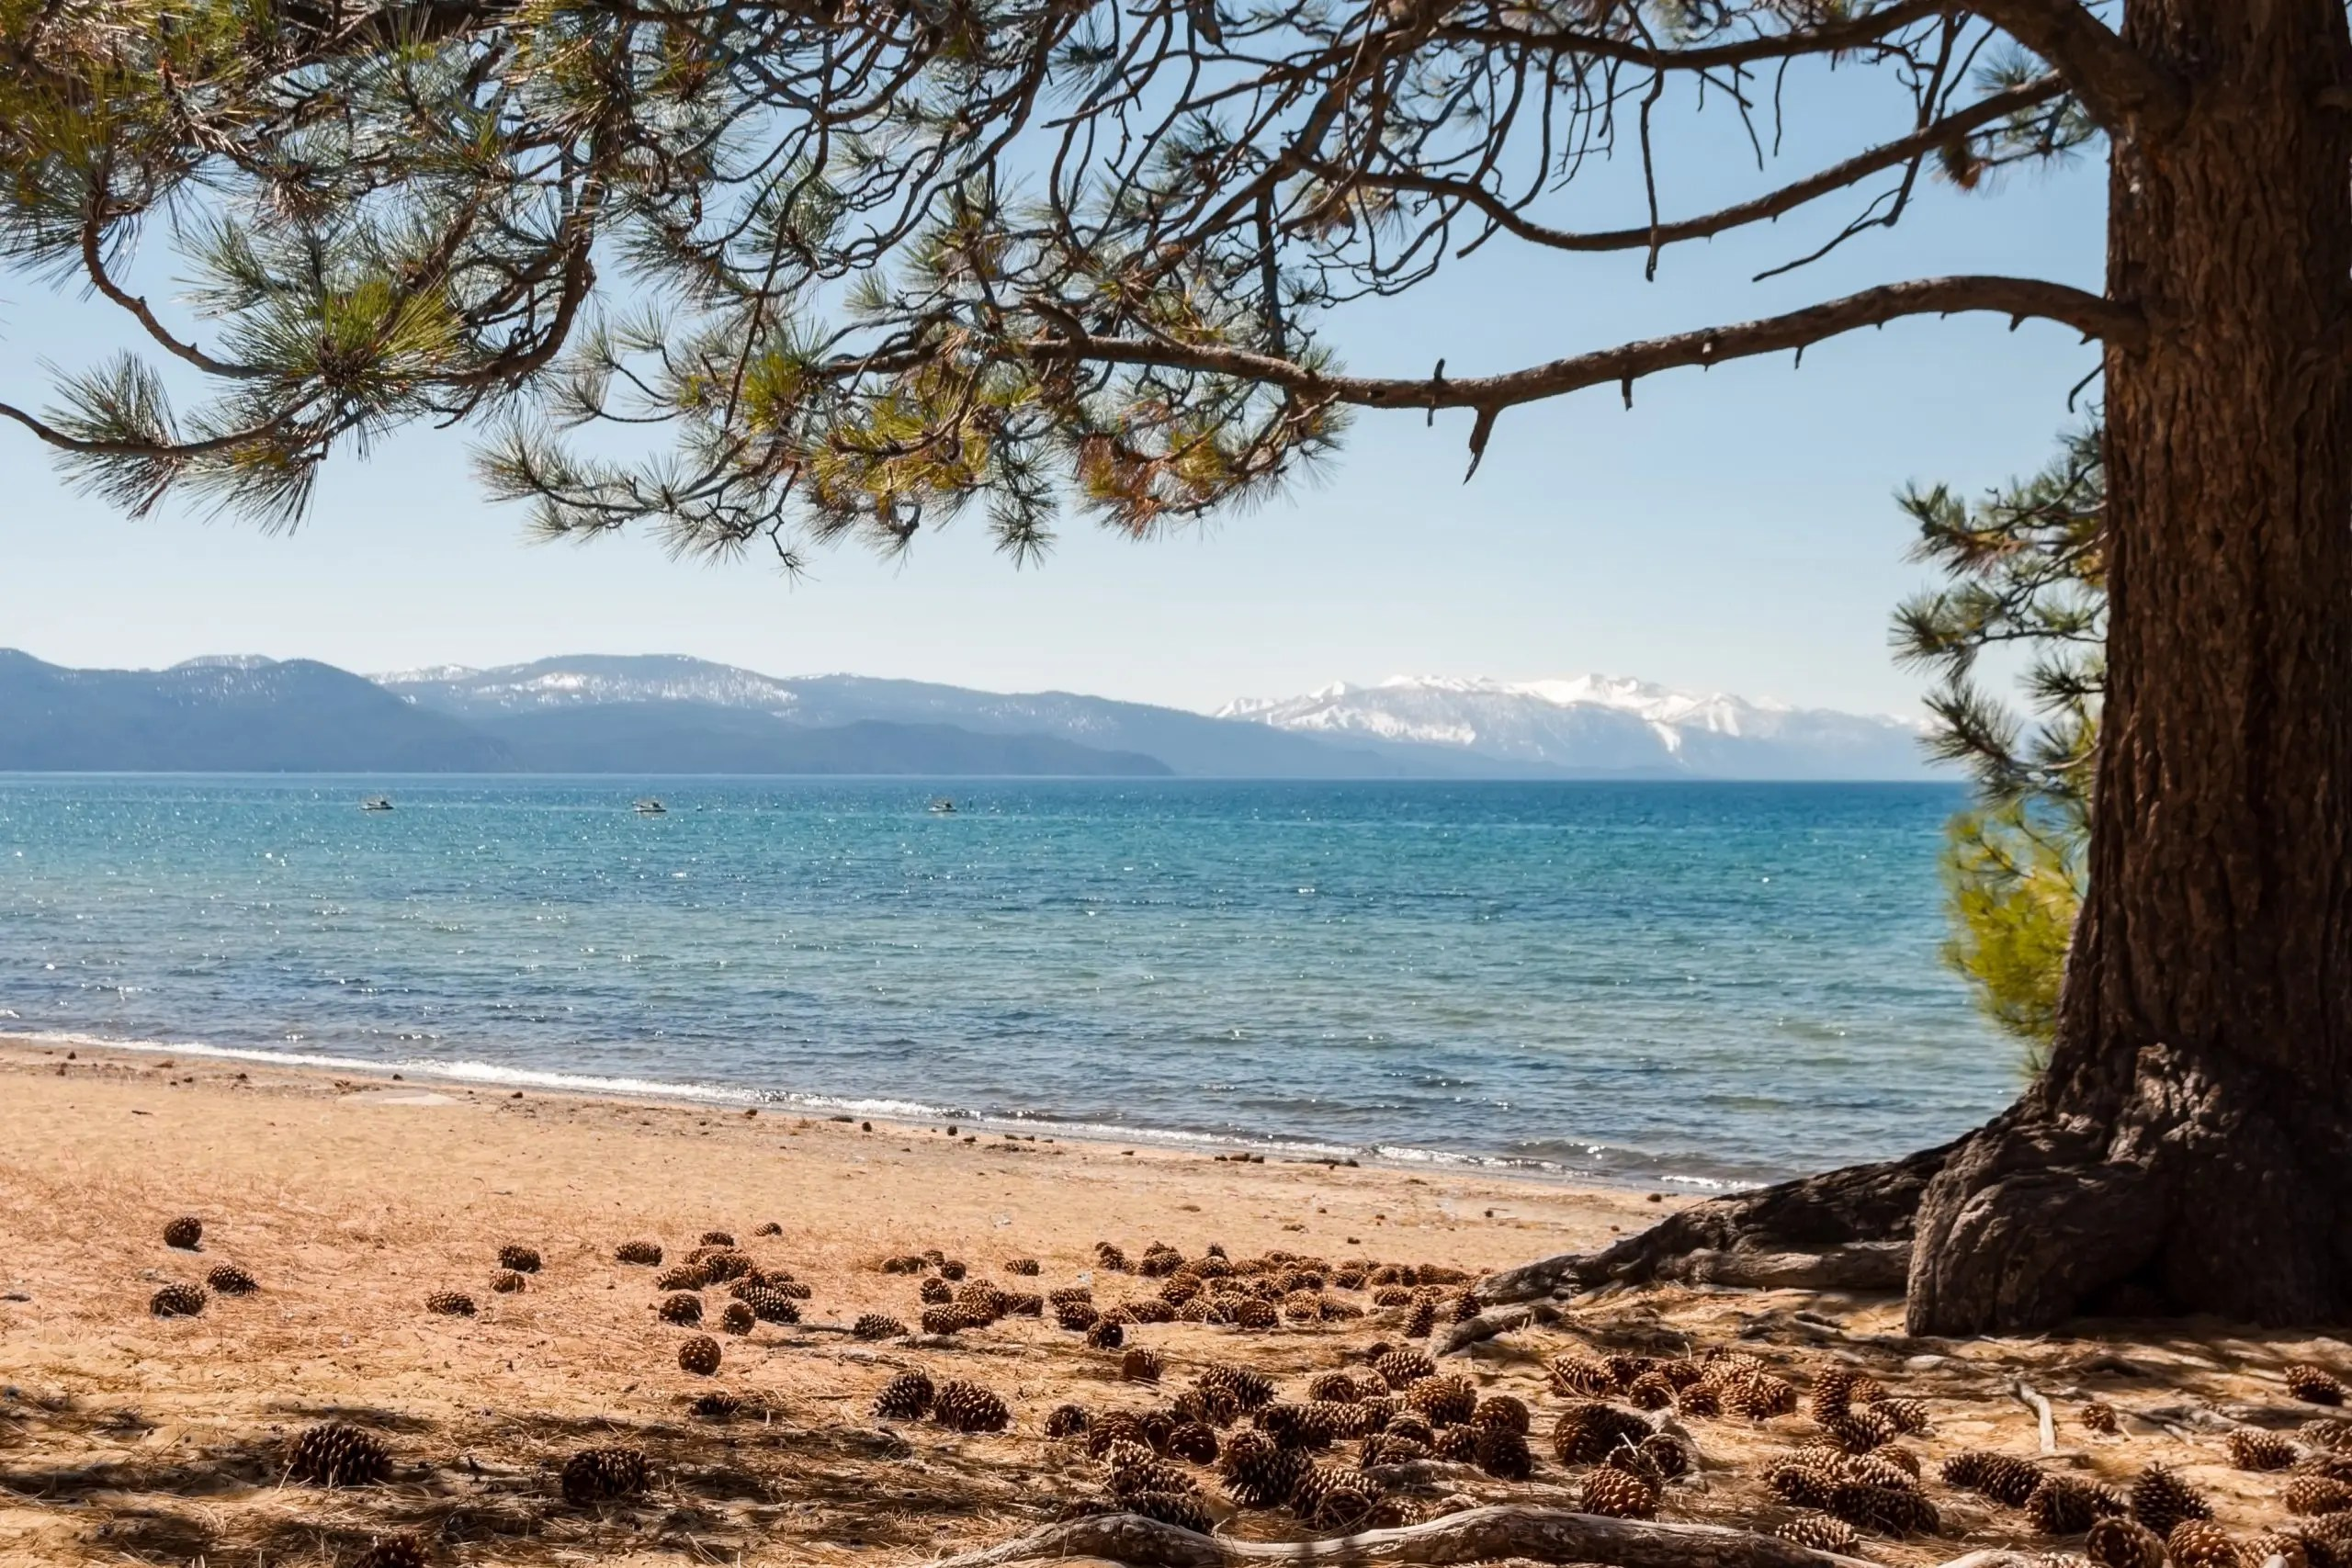 Panoramic view of a pine tree framing the beach with water and mountains in the background. This shot was taken in Tahoe Beach and is a typical visual for that location.